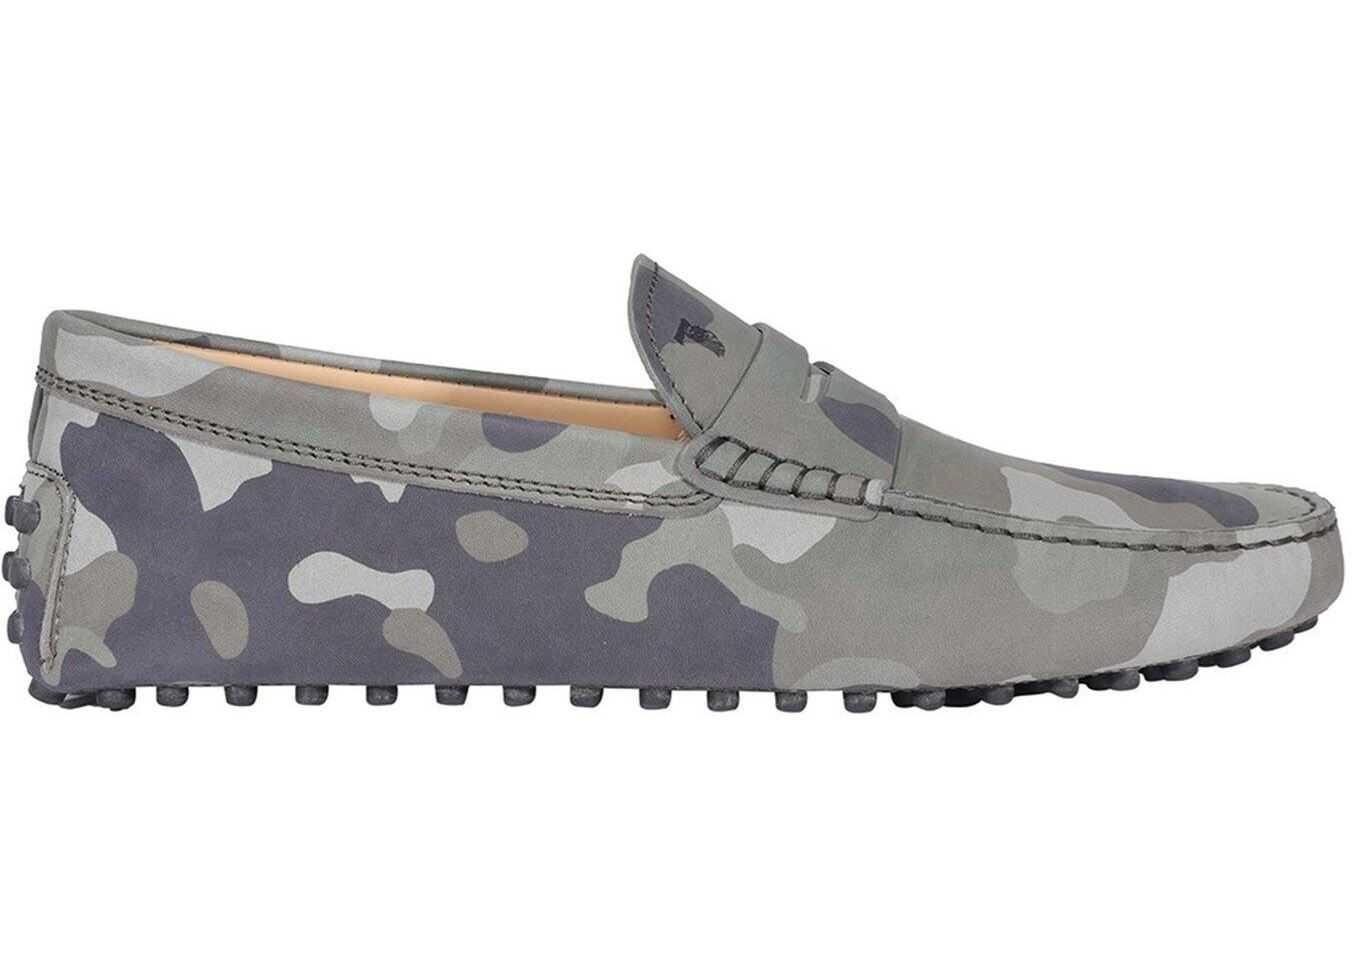 TOD'S Camouflage Nubuck Loafers In Green XXM64C00640PKPV008 Green imagine b-mall.ro